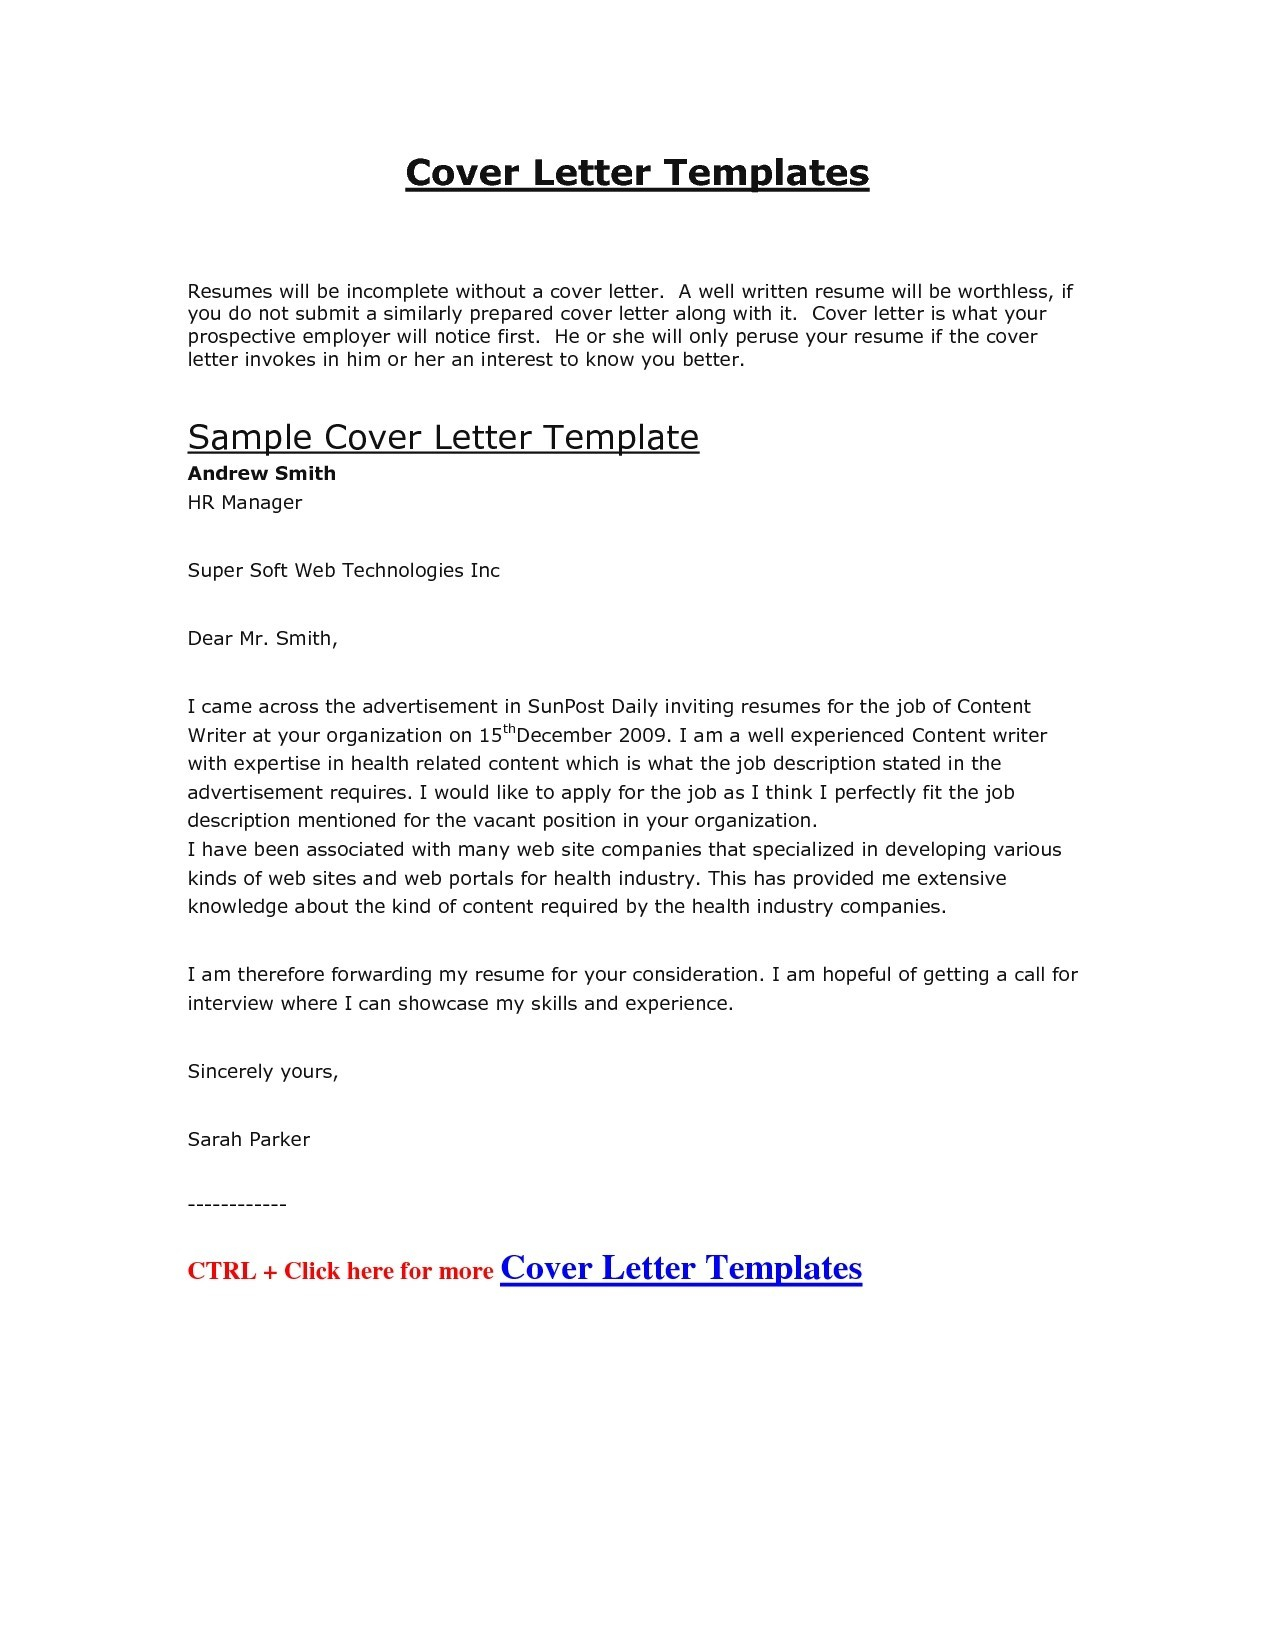 Job Application Letter Template - Job Application Letter format Template Copy Cover Letter Template Hr